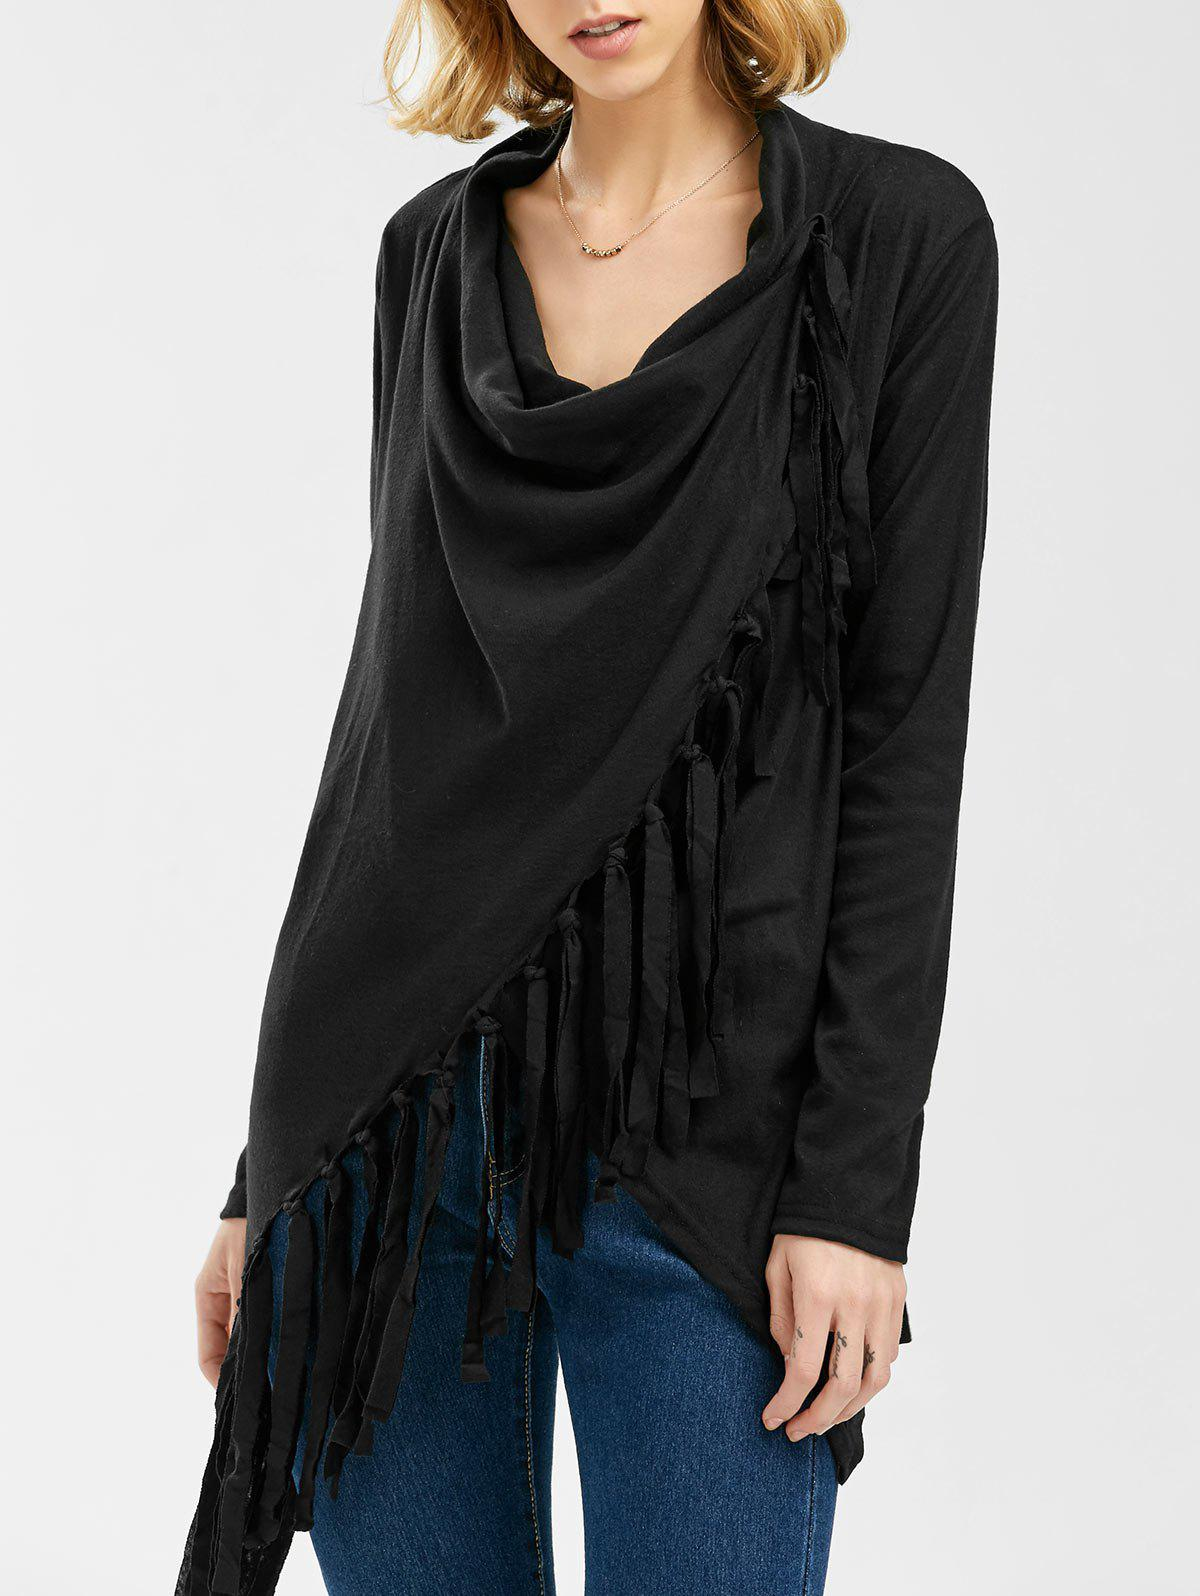 Tassel Asymmetric Long Sleeve TopWOMEN<br><br>Size: M; Color: BLACK; Material: Polyester; Sleeve Length: Full; Collar: Cowl Neck; Style: Fashion; Embellishment: Tassel; Pattern Type: Solid; Weight: 0.3300kg; Package Contents: 1 x T-Shirt;